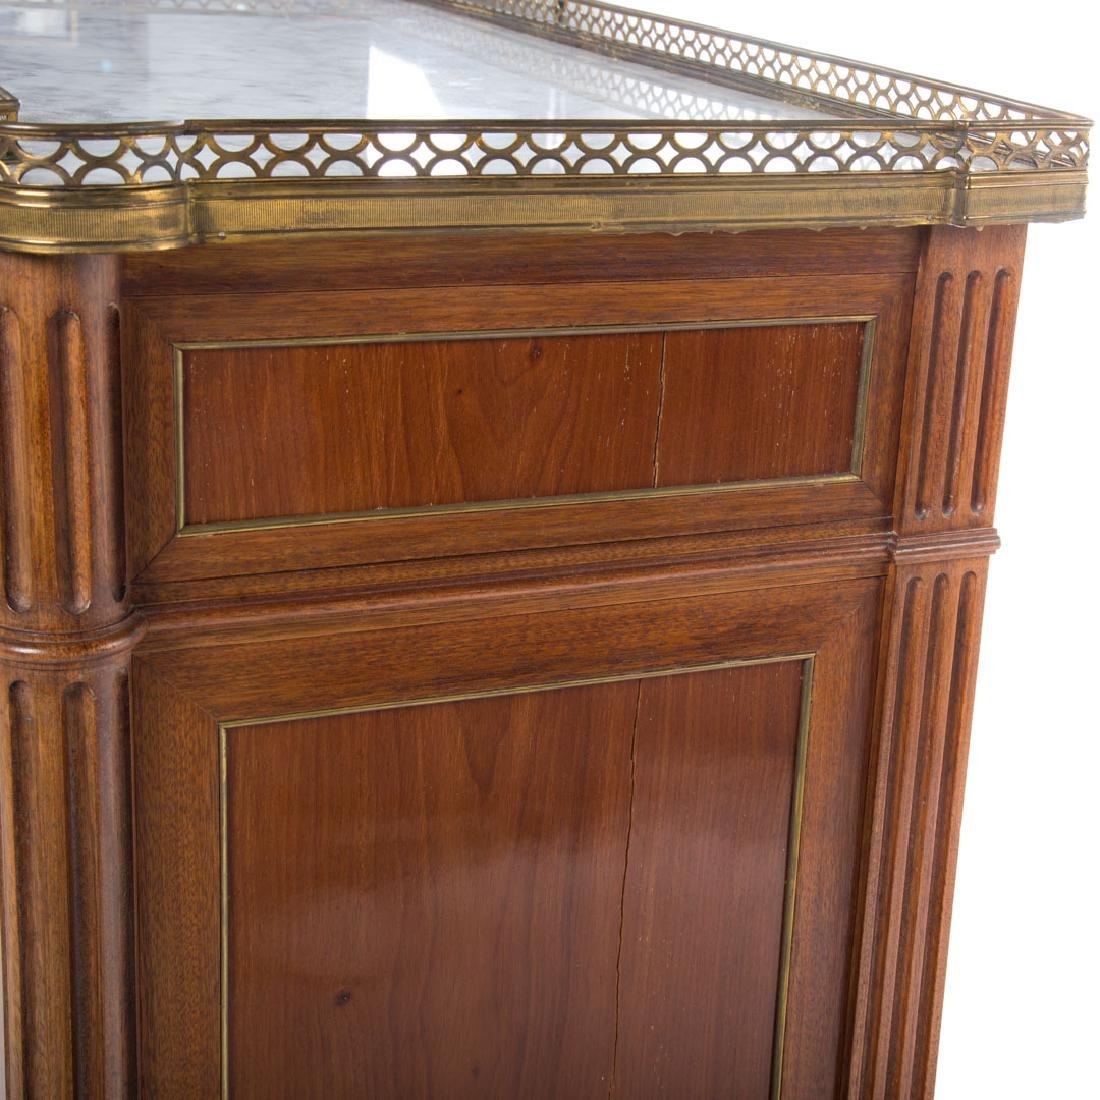 Pr Louis XVI style mahogany & marble top cabinets - 5